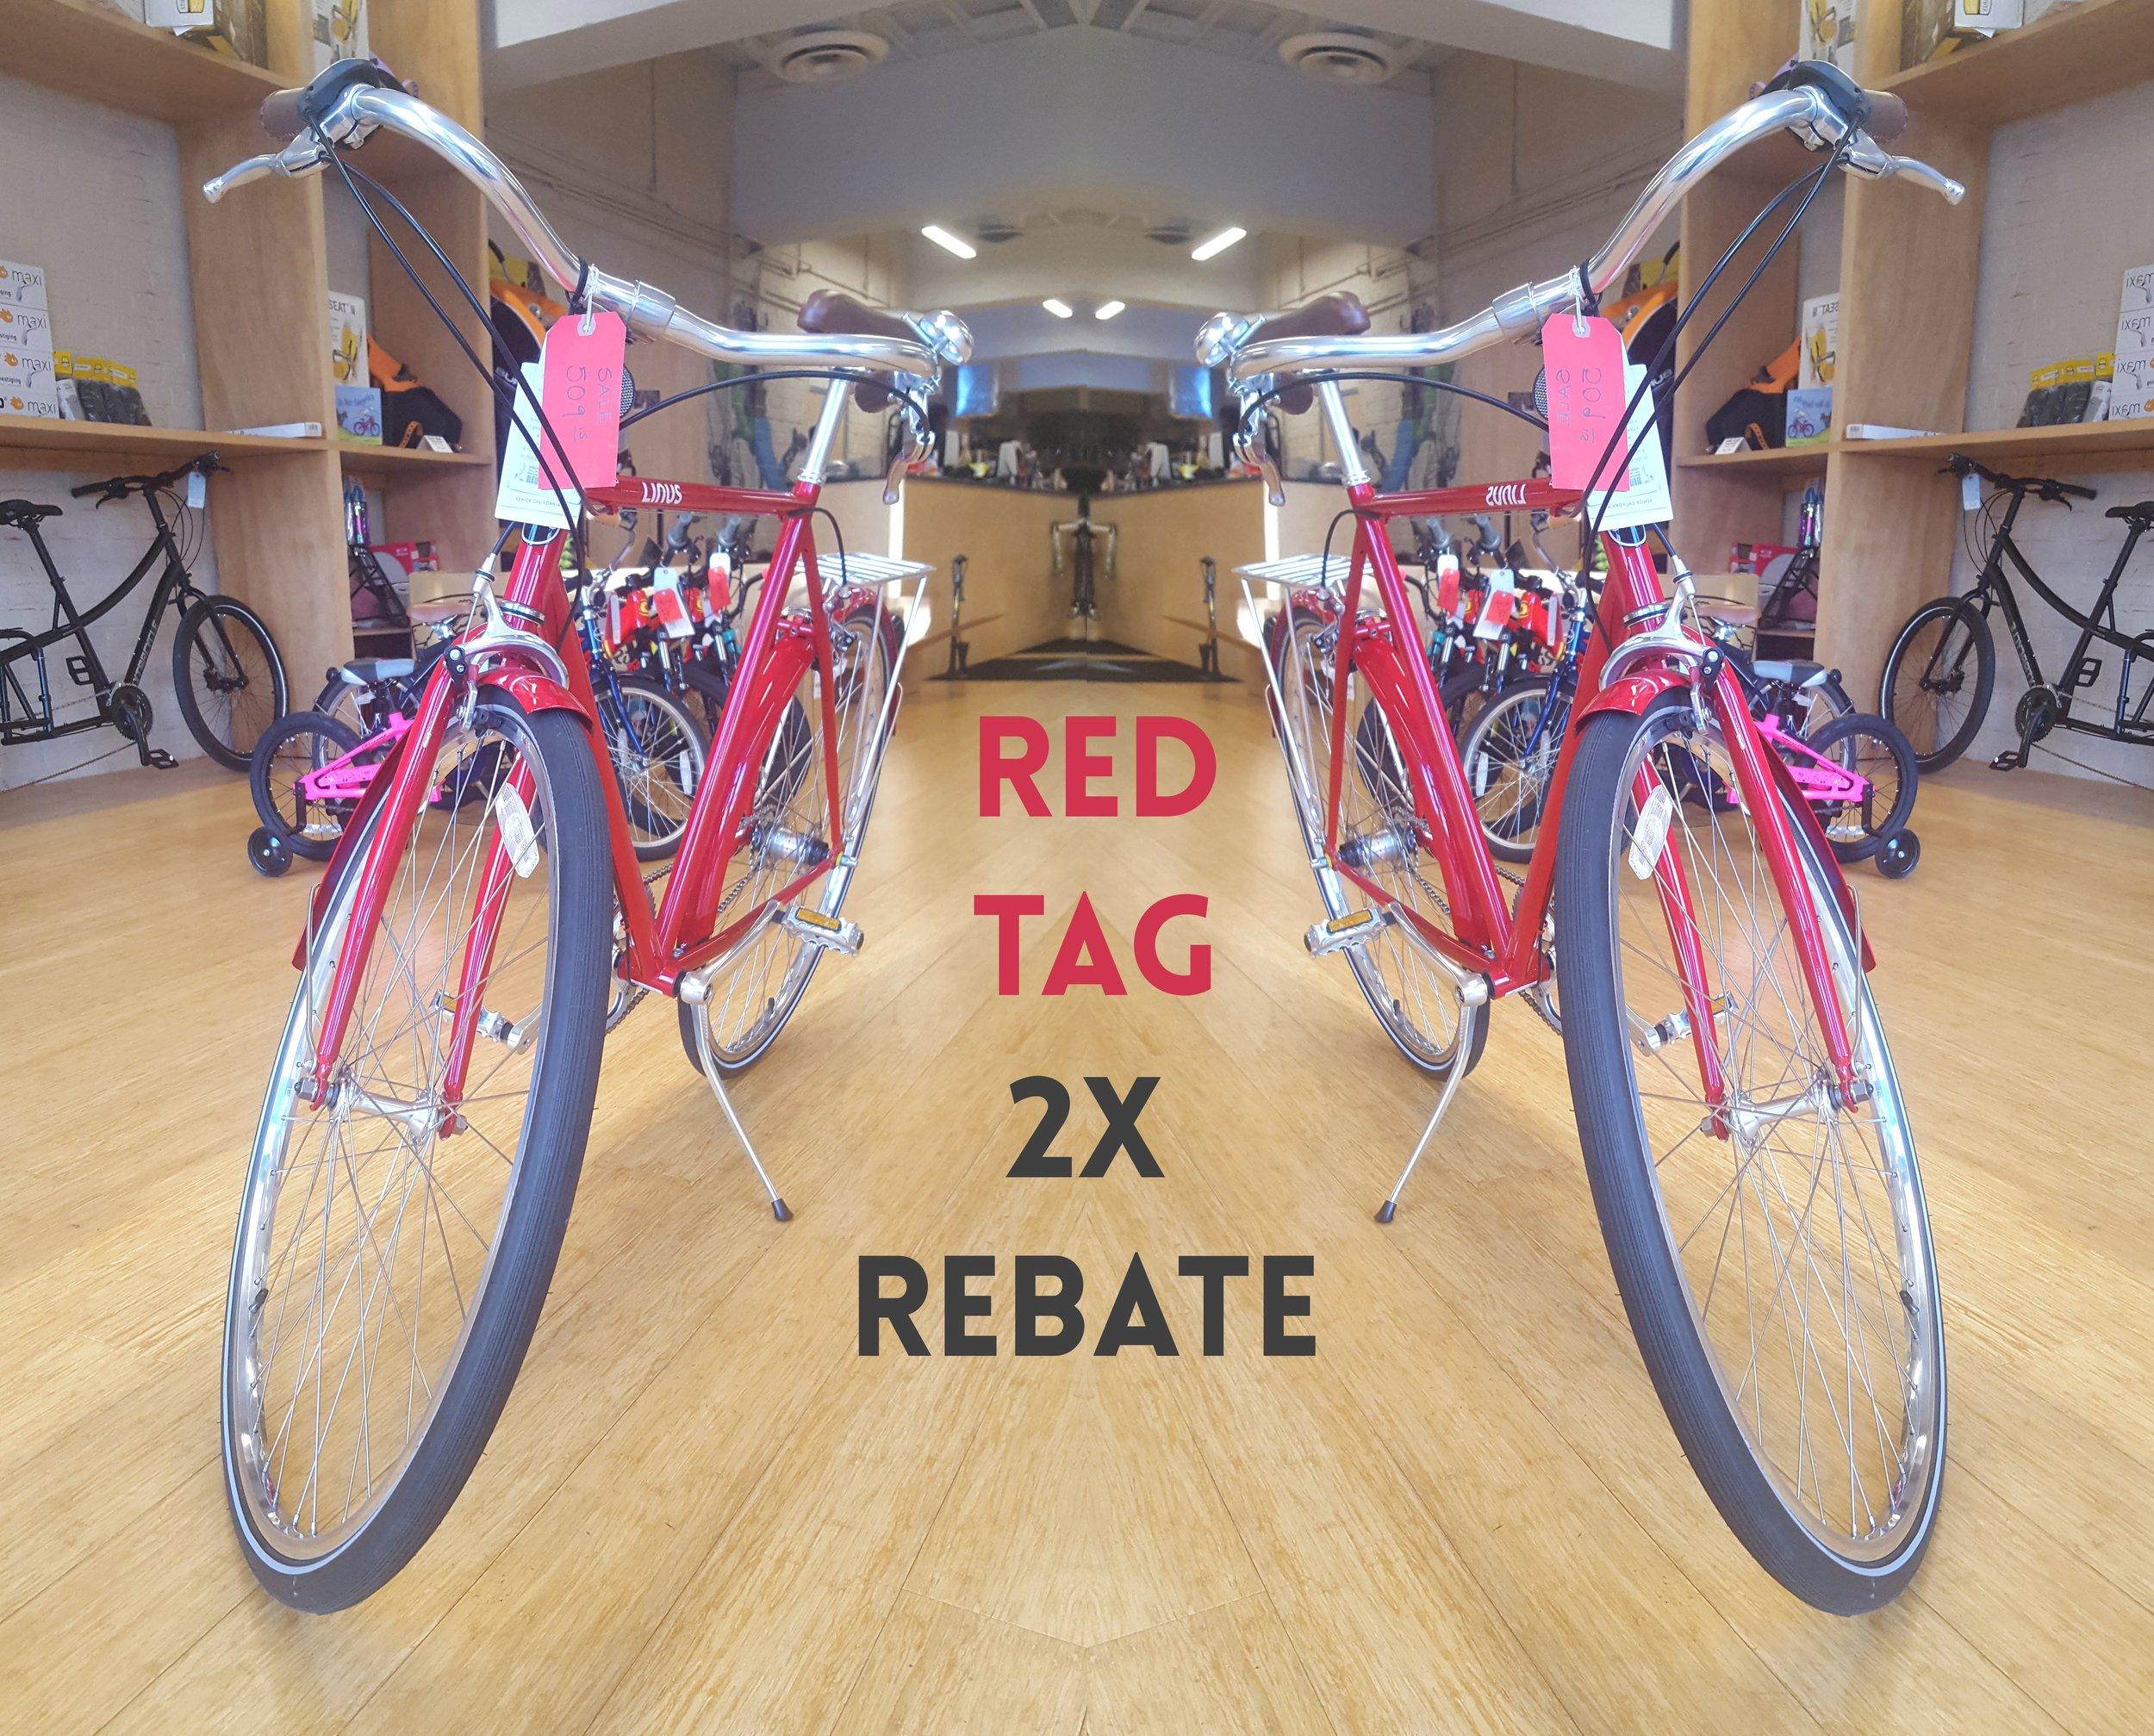 doubled red tag rebate text.jpg